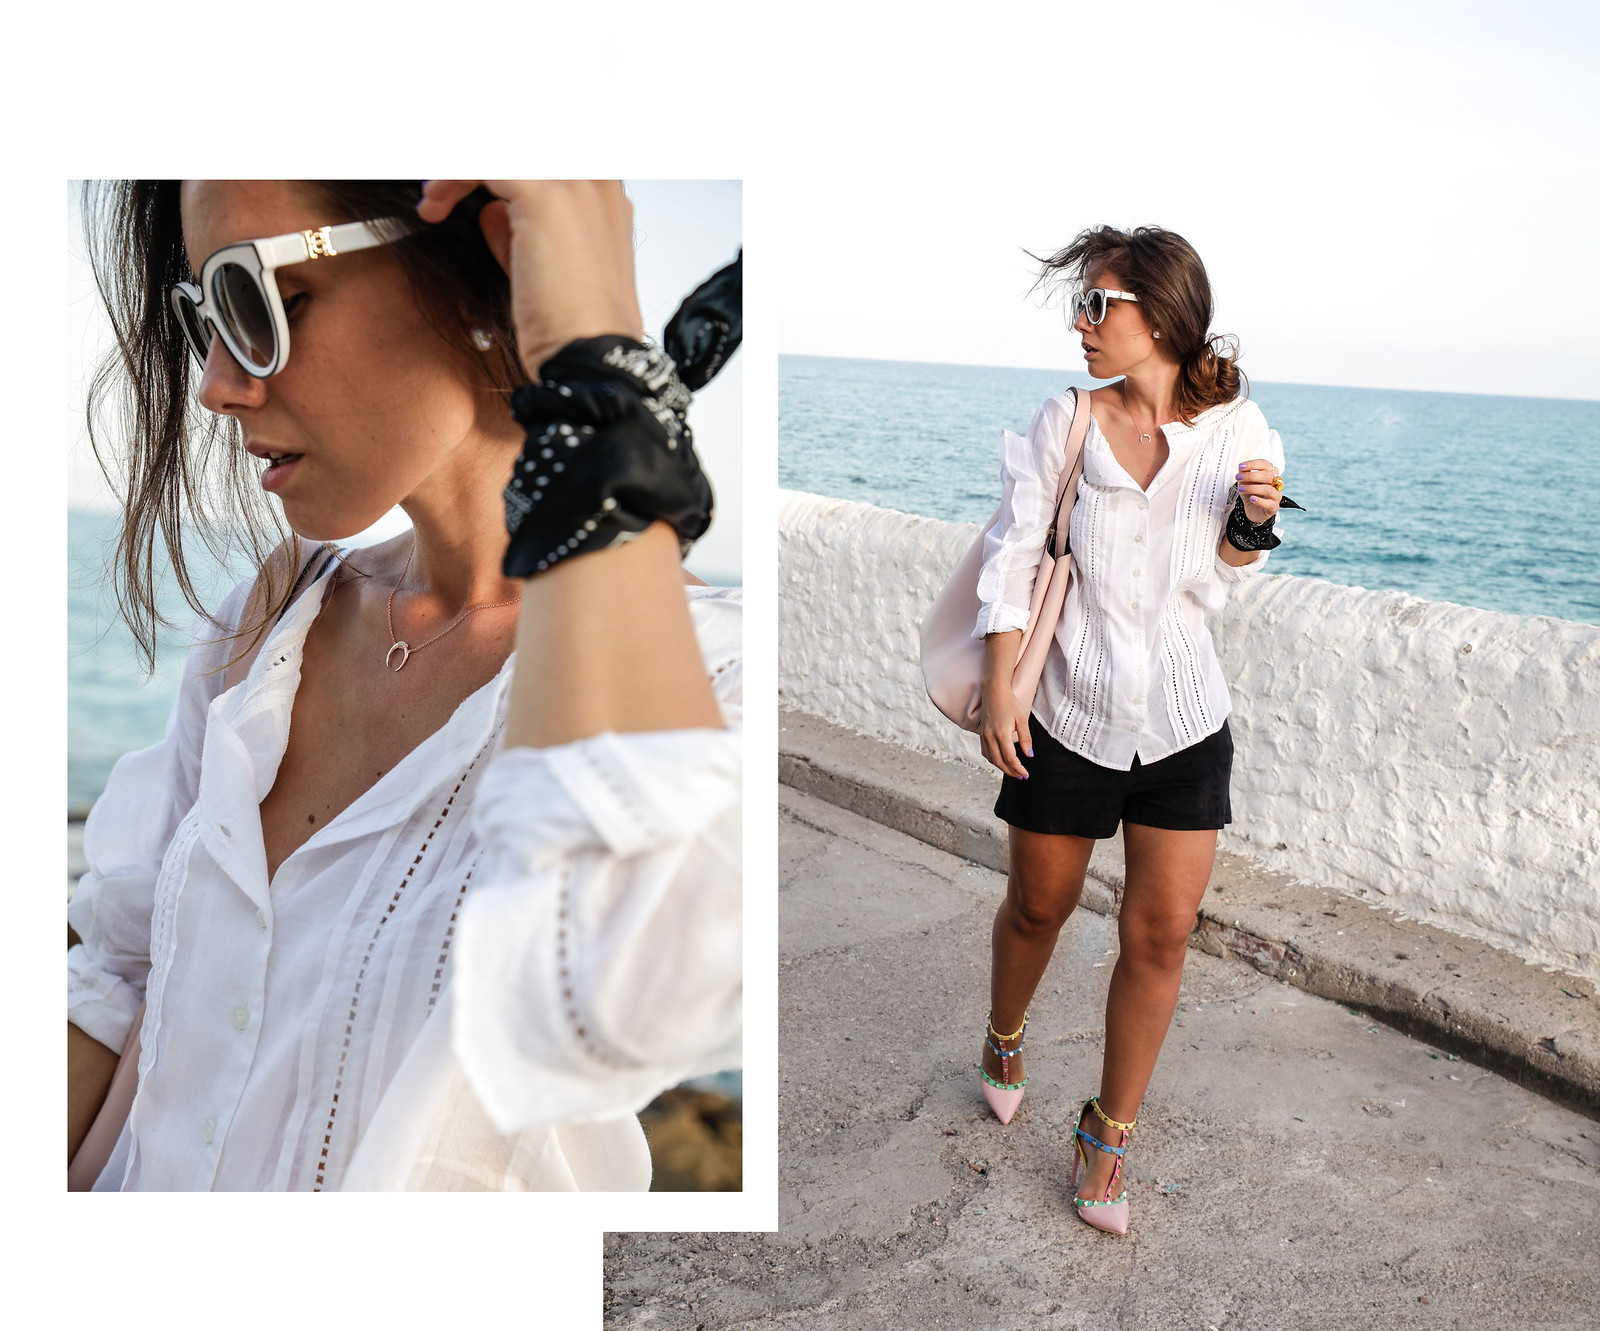 05_blusa_blanca_volantes_con_tacones_tachuelas_theguestgirl_black_white_outfit_storets_shorts